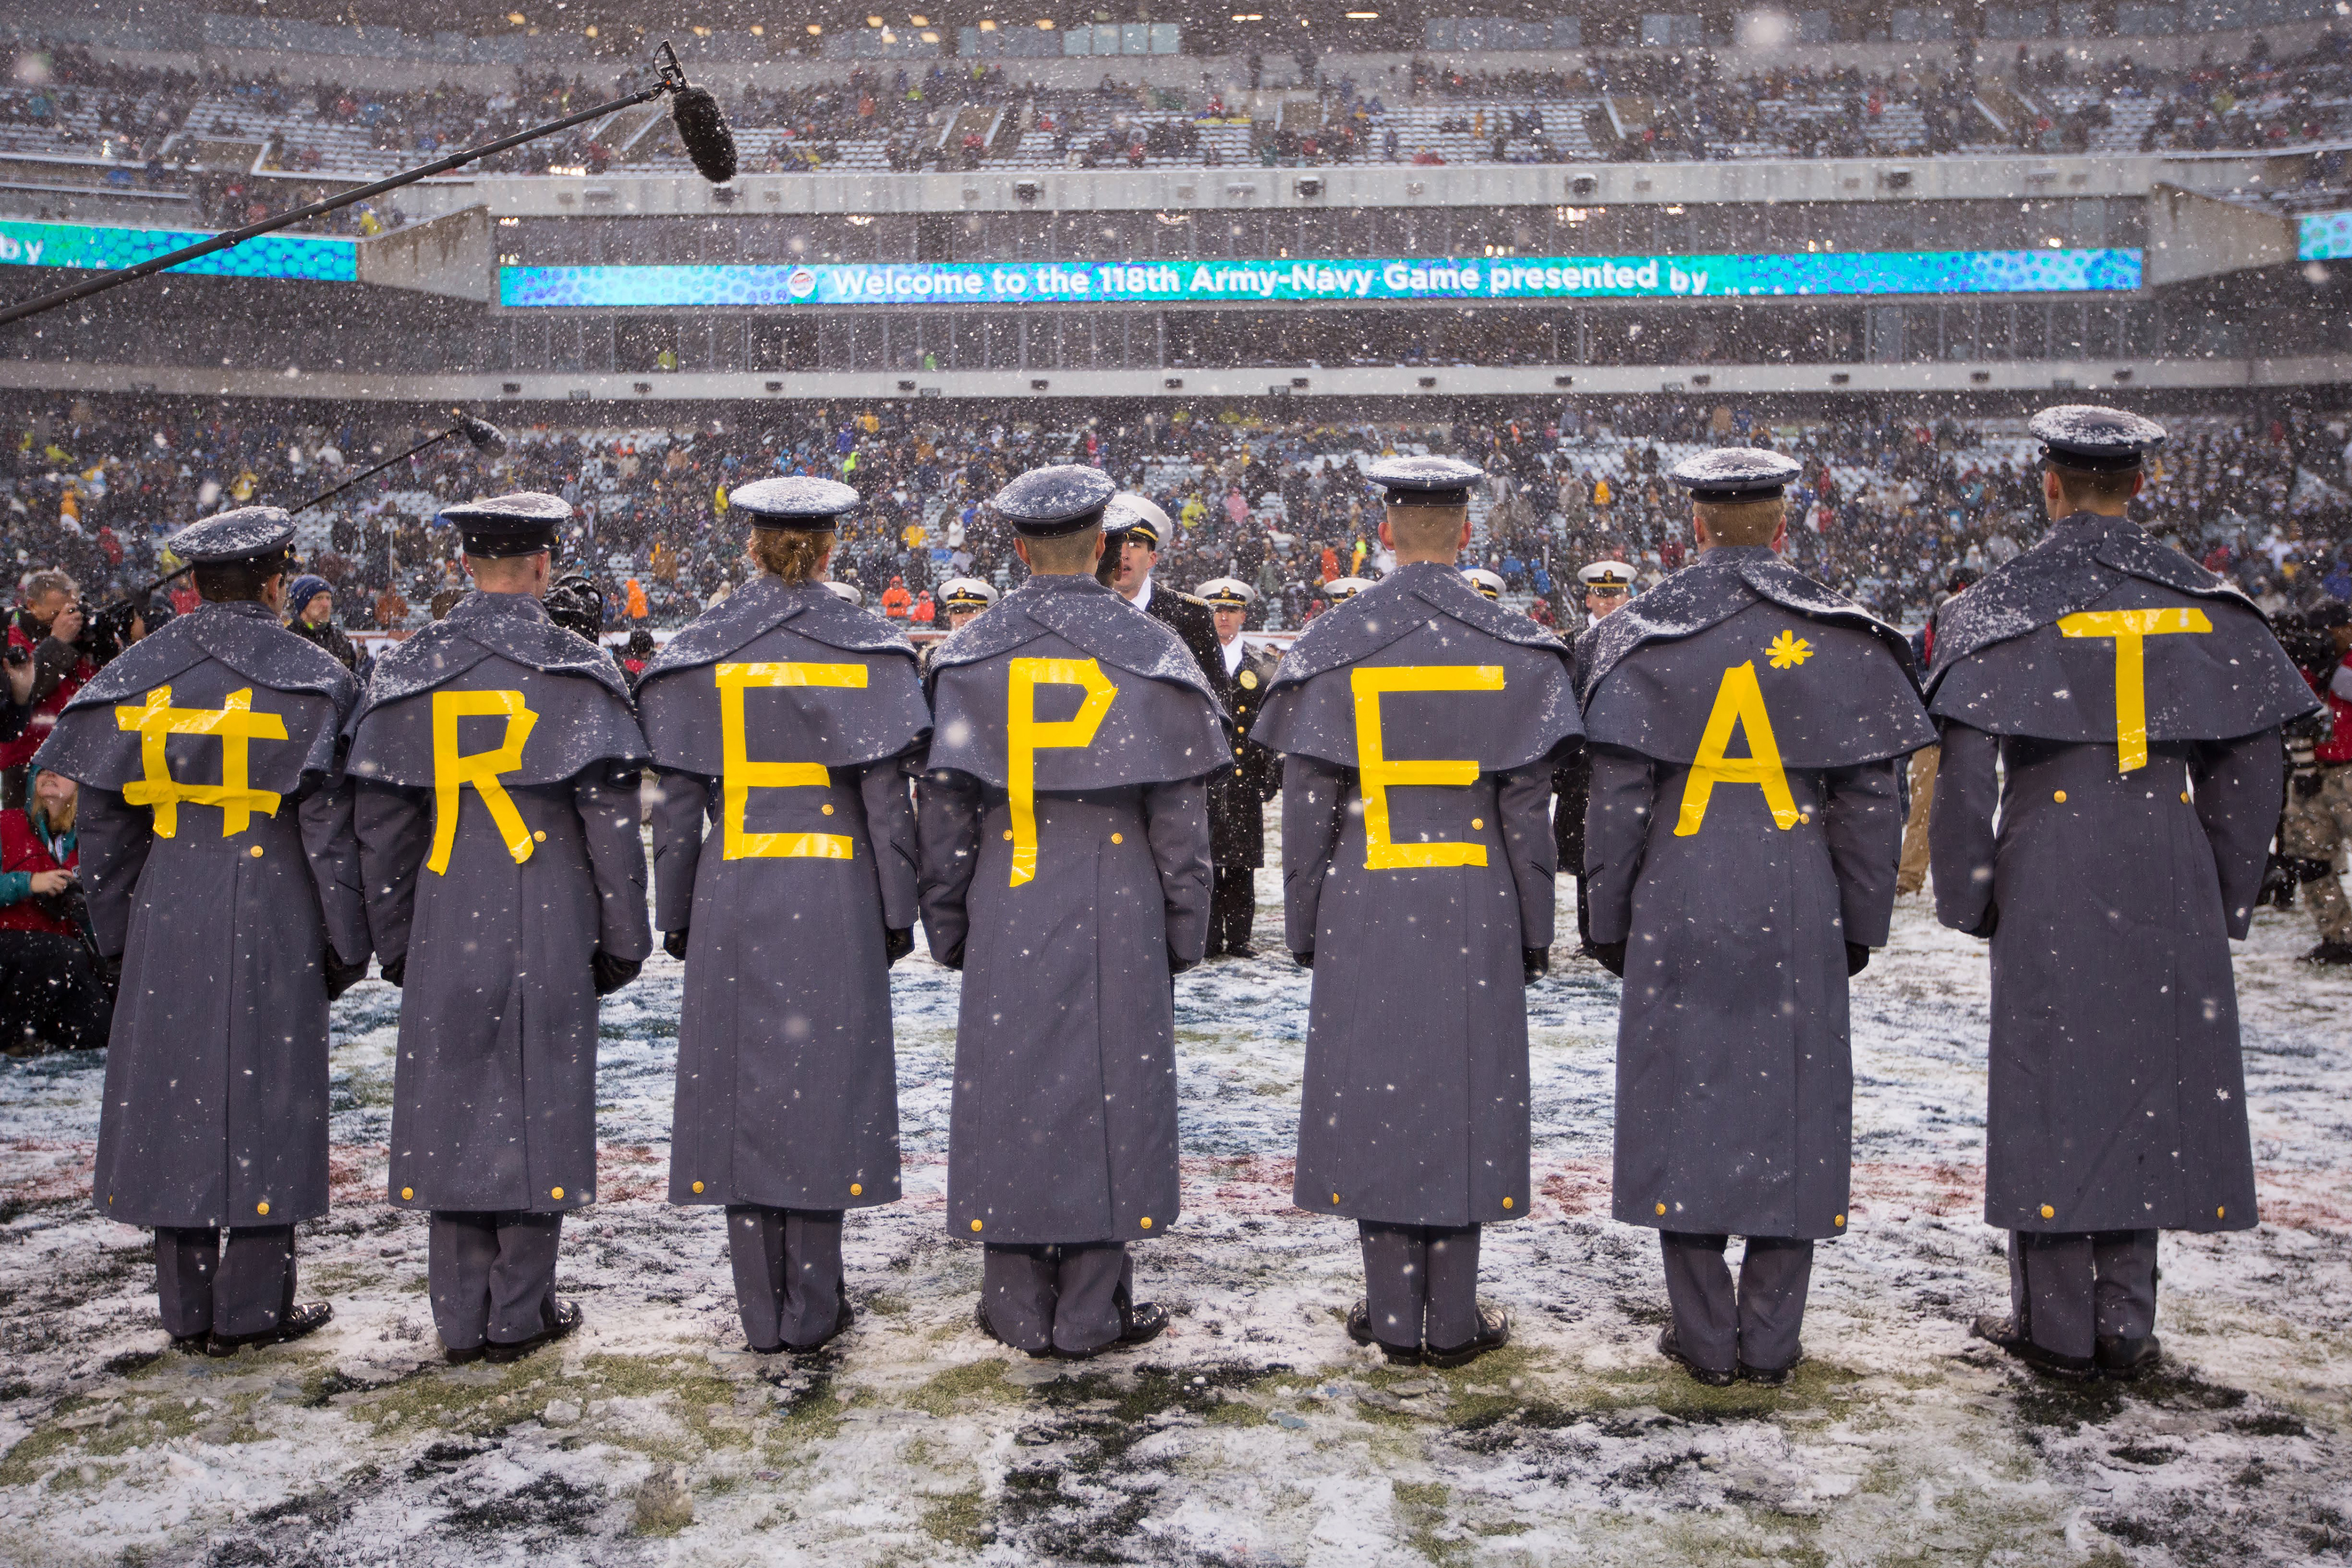 Army Football Preview  The Army-Navy Game - As For Football fc2ab9702